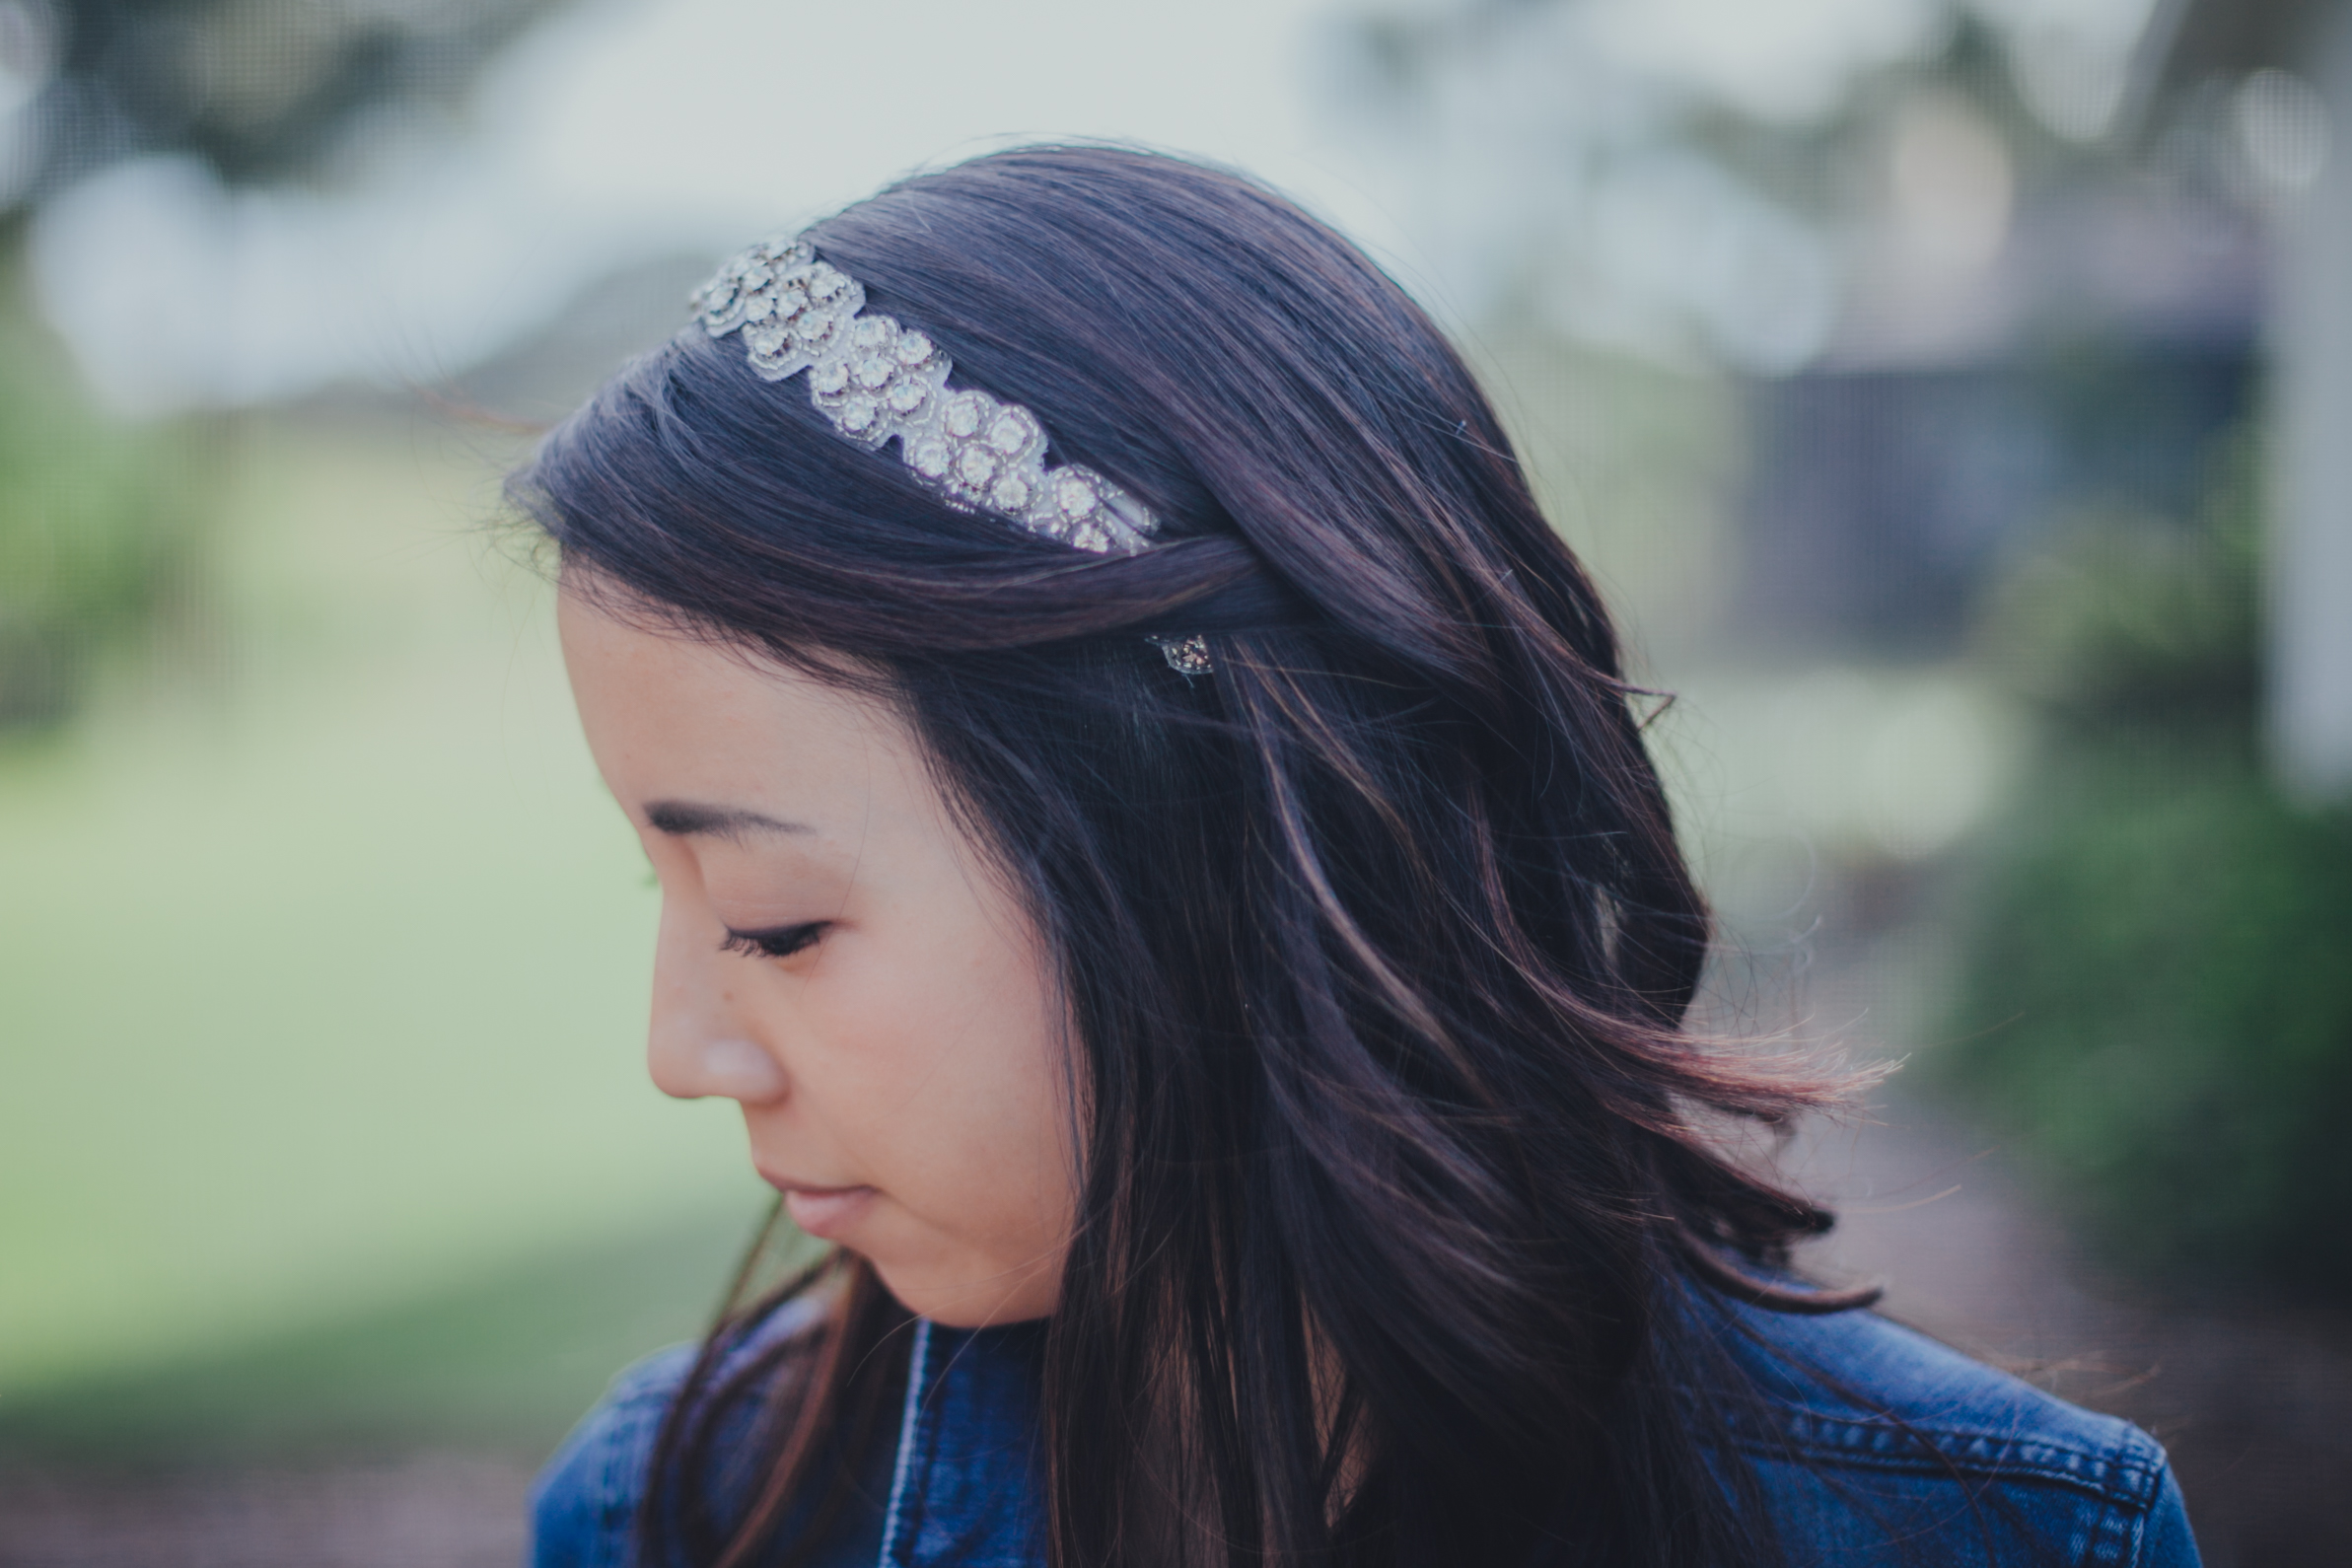 This Jenn Girl - Infinity Headbands 2